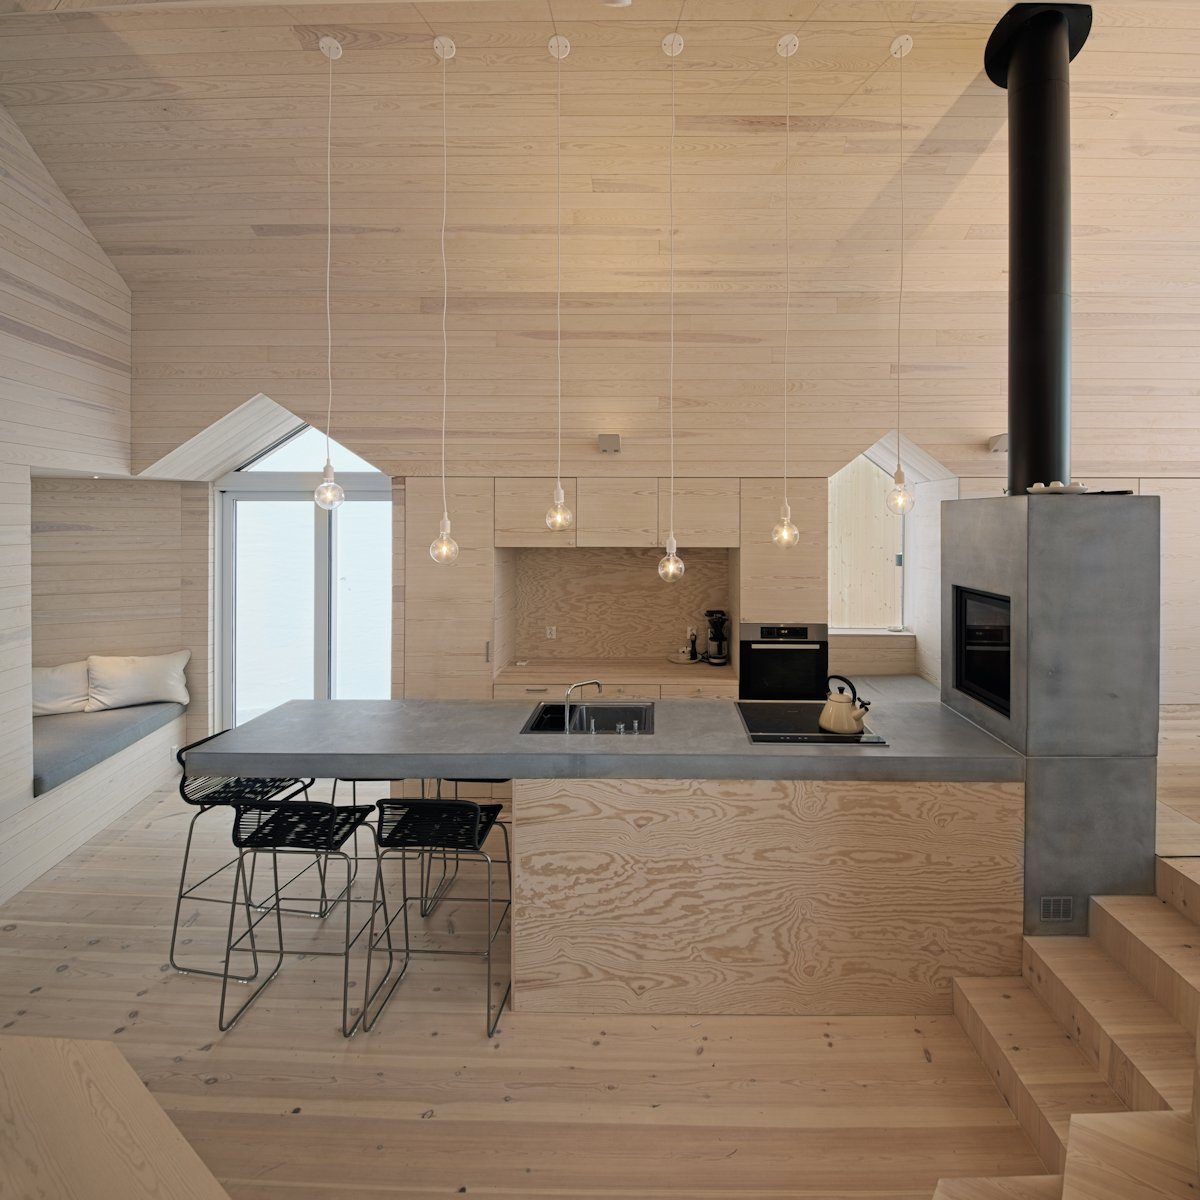 Lighting, Kitchen Island, Holiday Lodge in Havsdalen, Norway